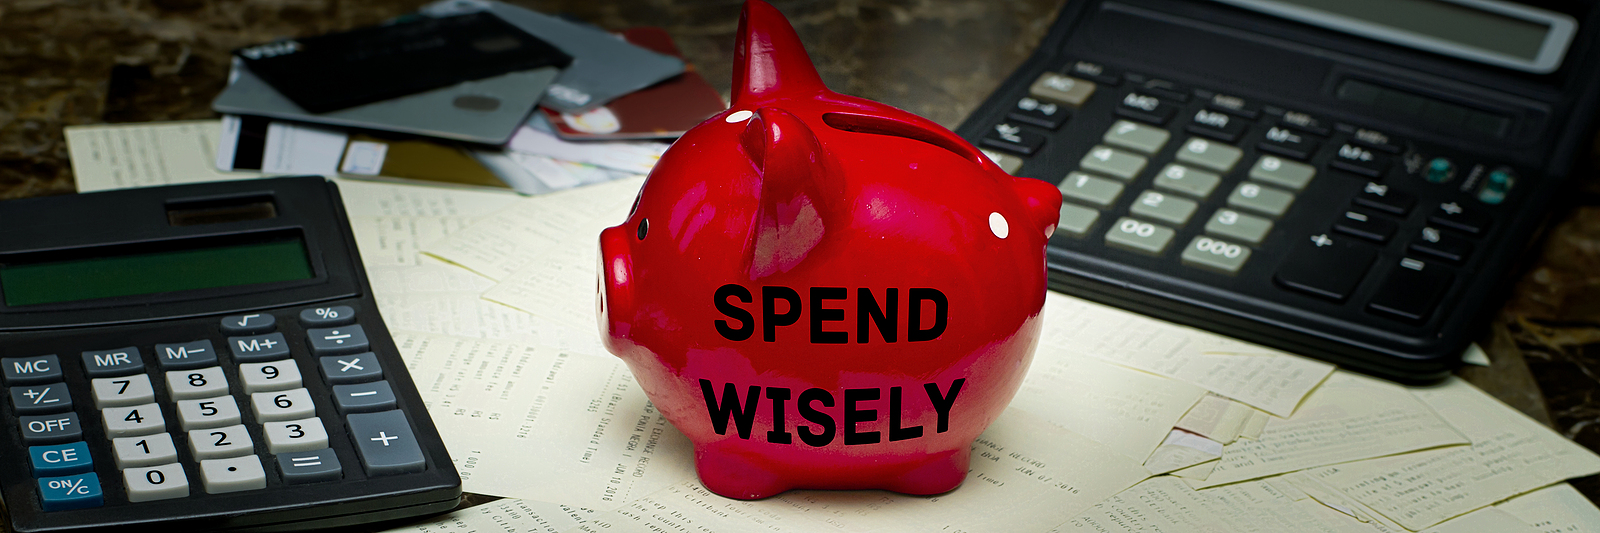 3 Simple Ways to Reduce Unnecessary Spending